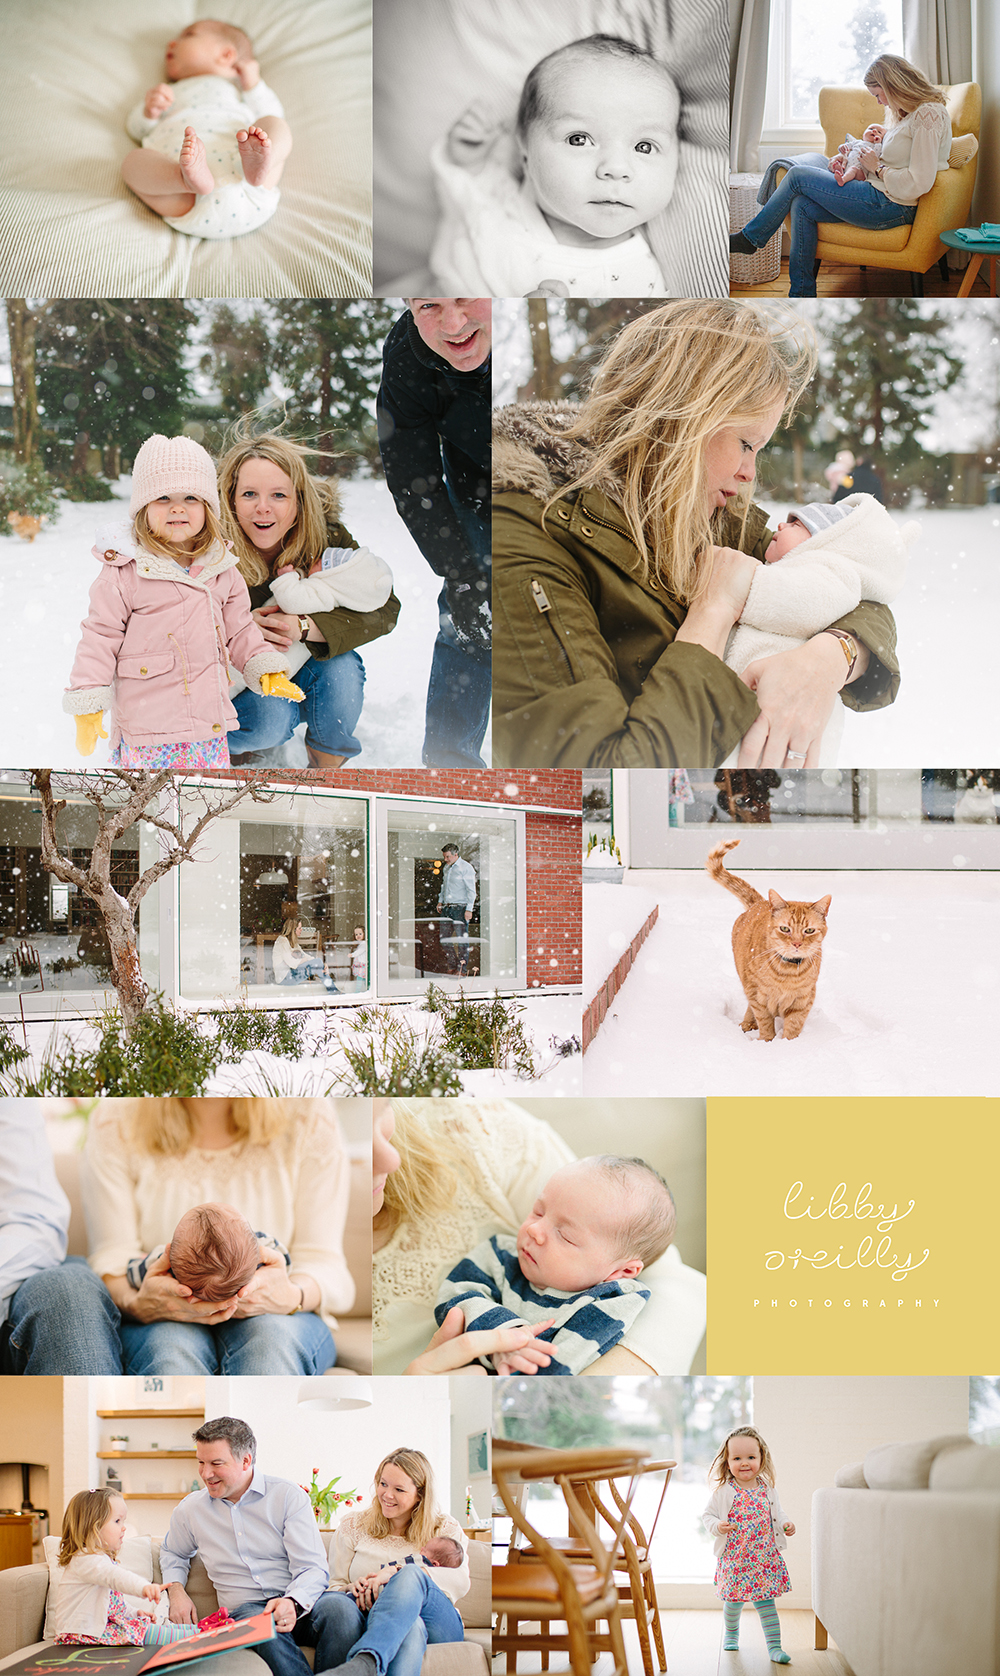 Winter wonderland Newborn & Family Photoshoot | Dublin, Ireland